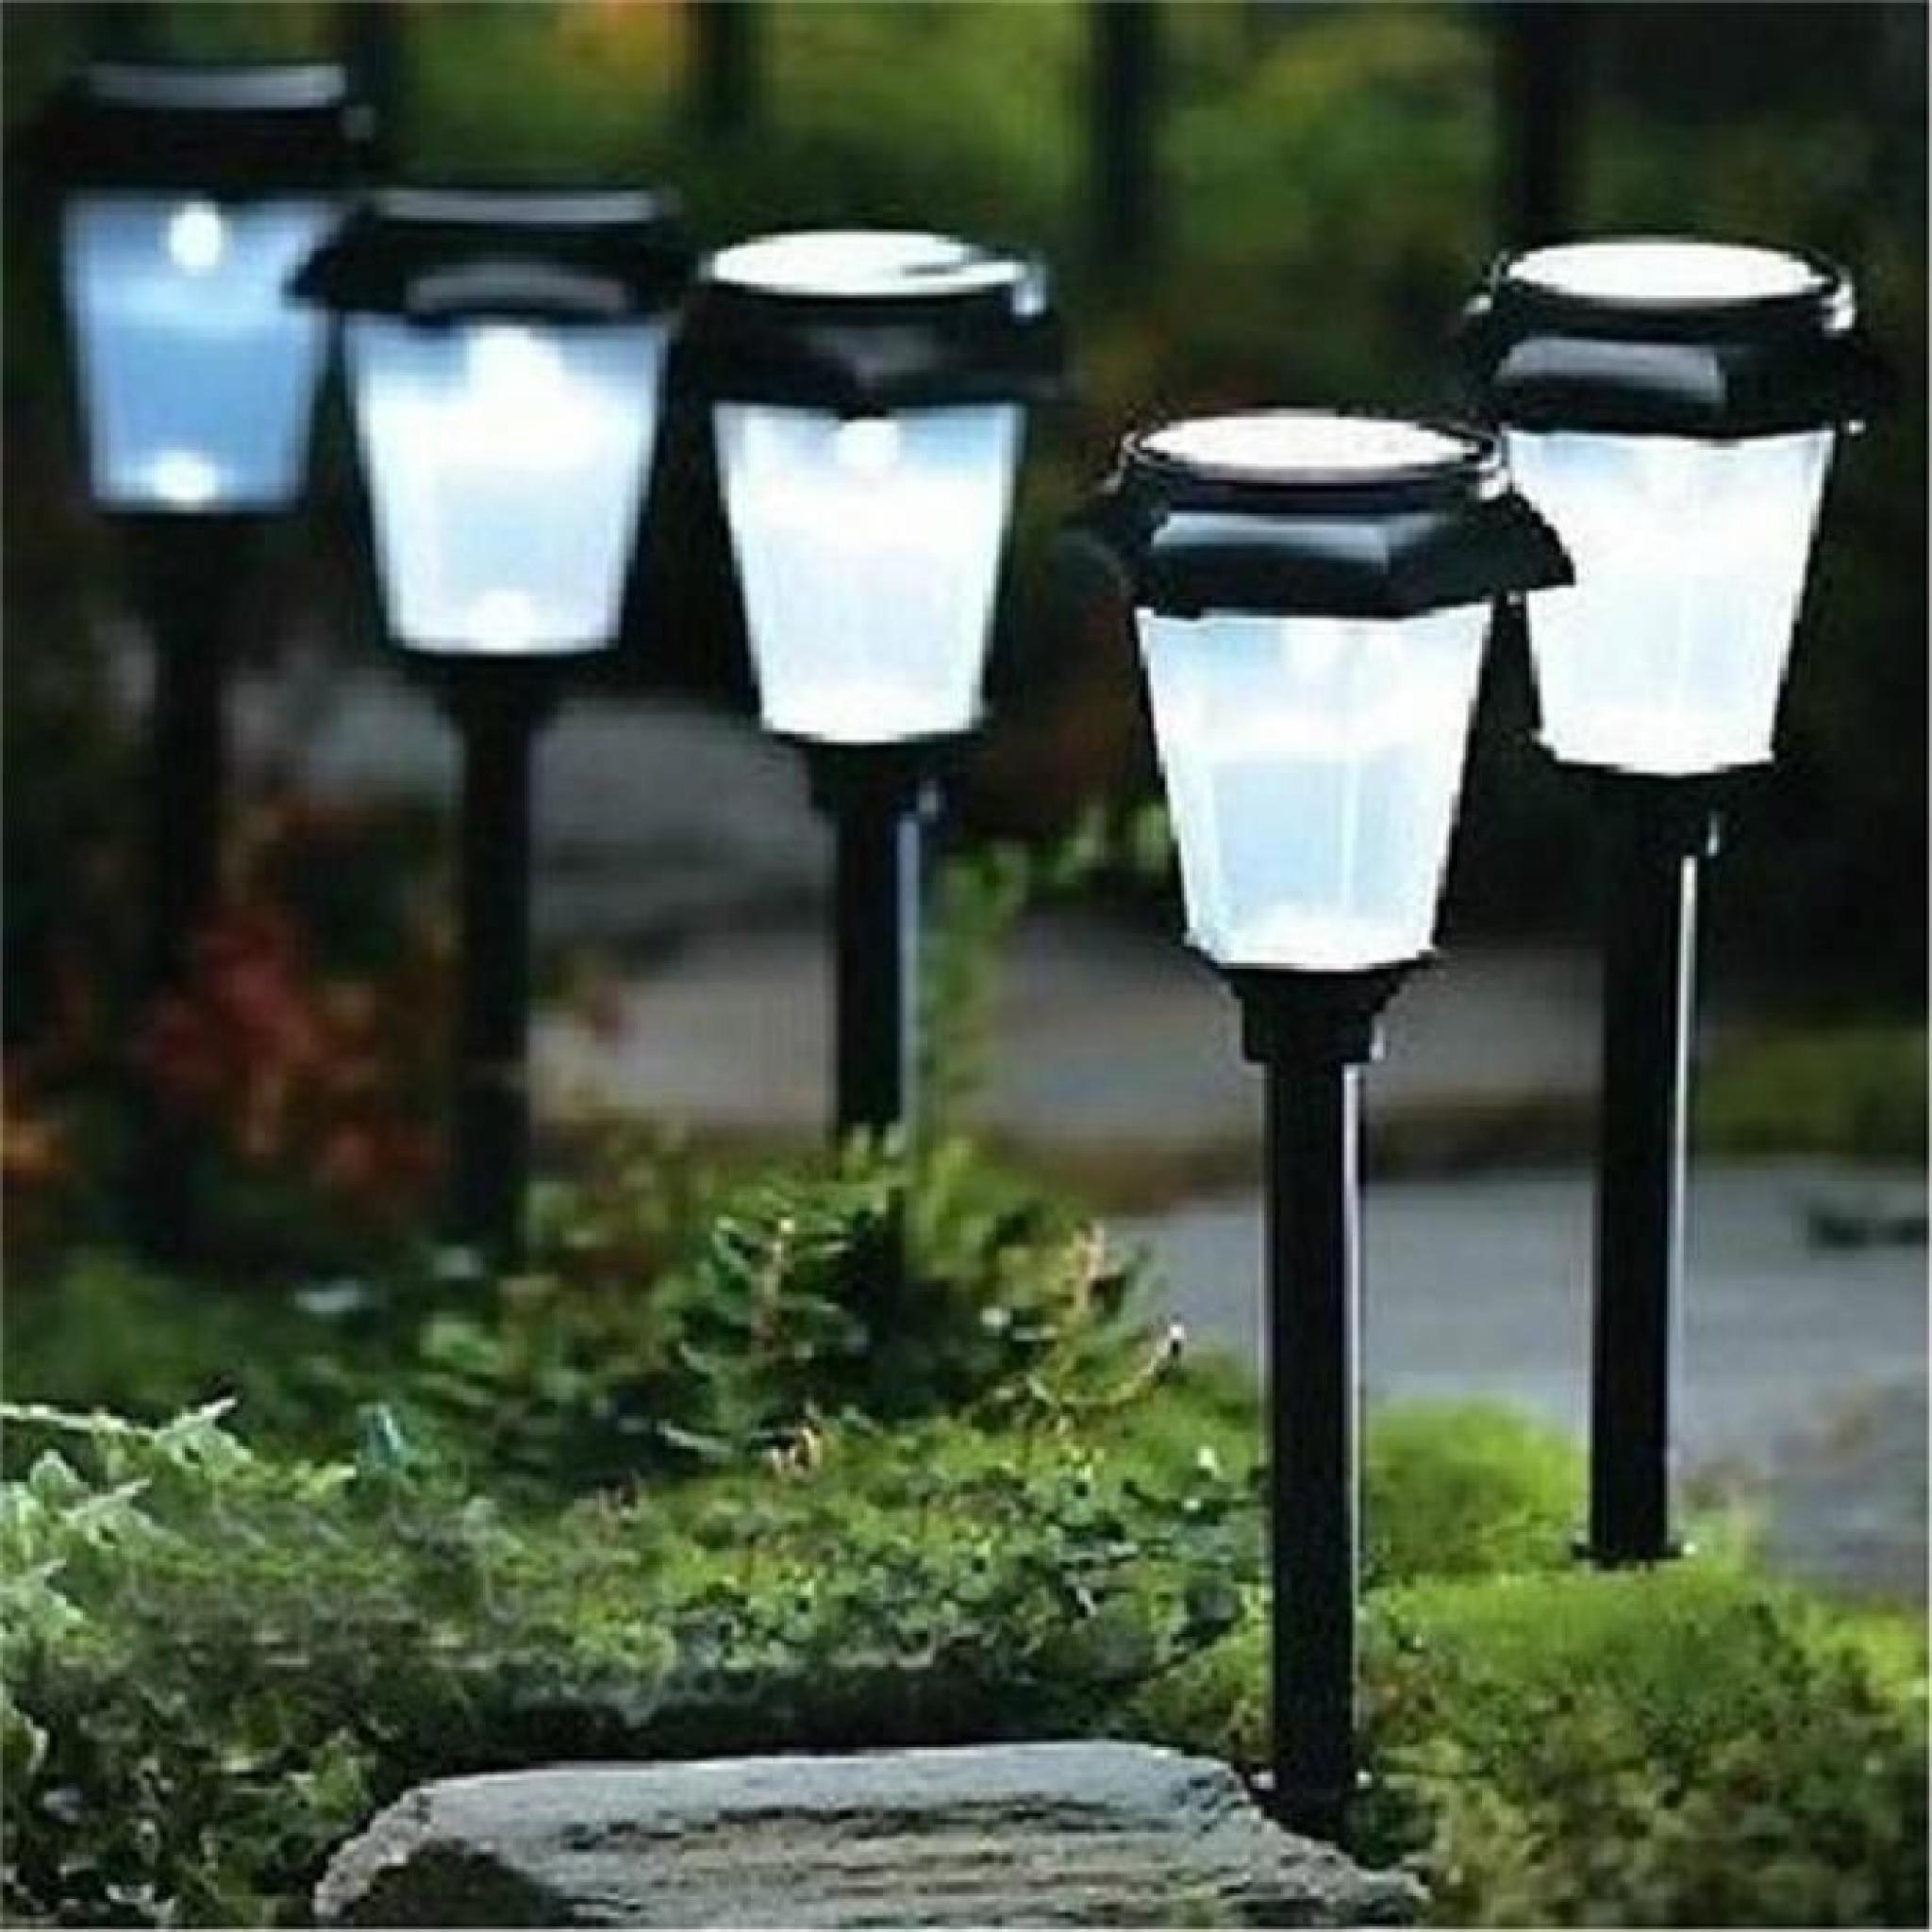 led lampe solaire jardin nergie changeant chemin jeu paysage ext rieur 3 couleur achat vente. Black Bedroom Furniture Sets. Home Design Ideas